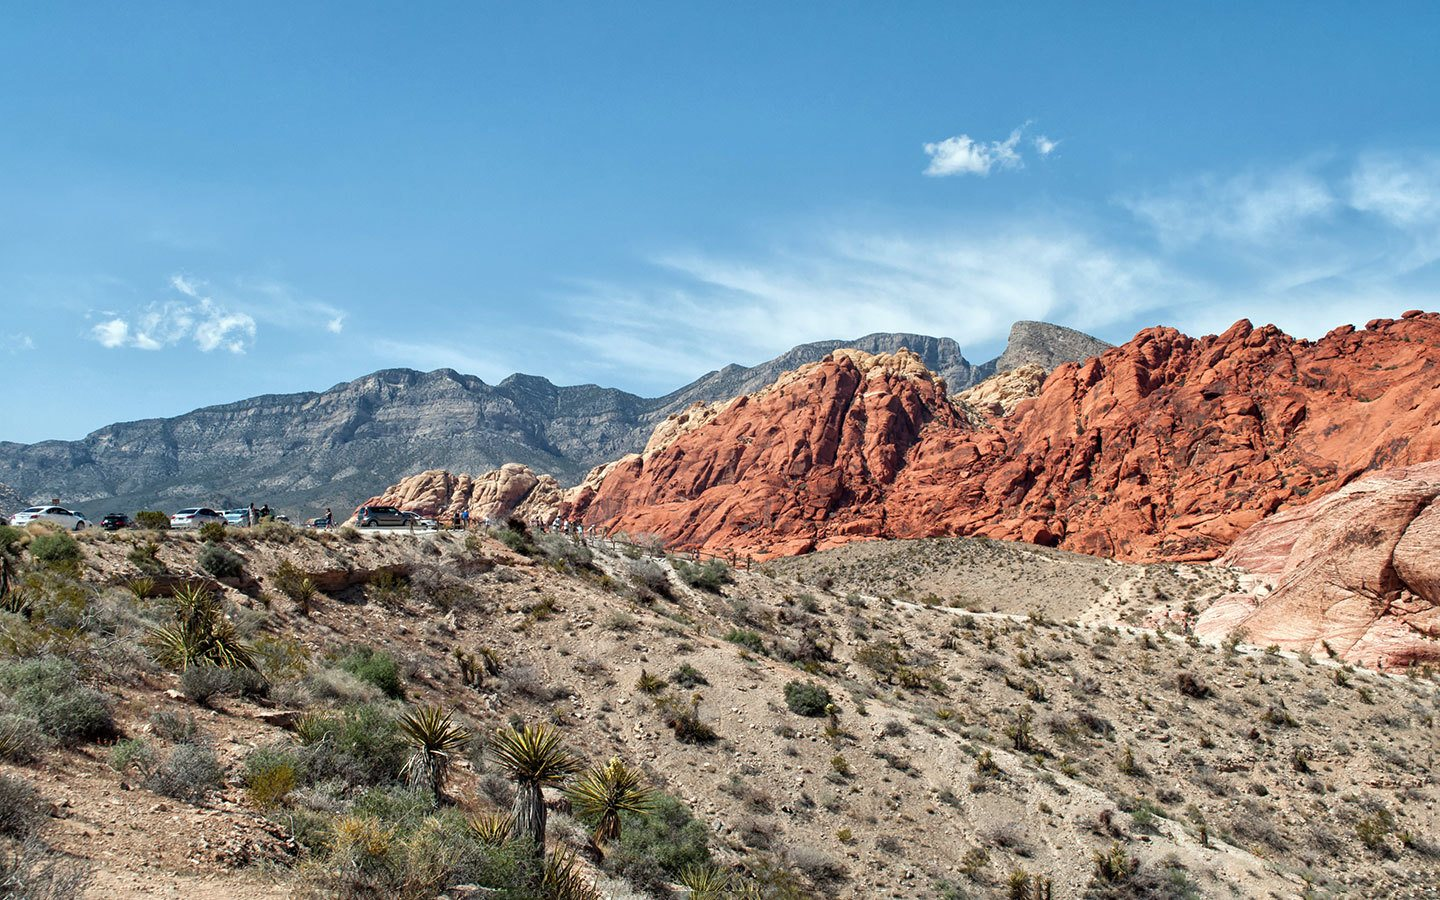 Red Rock Canyon state park in Nevada